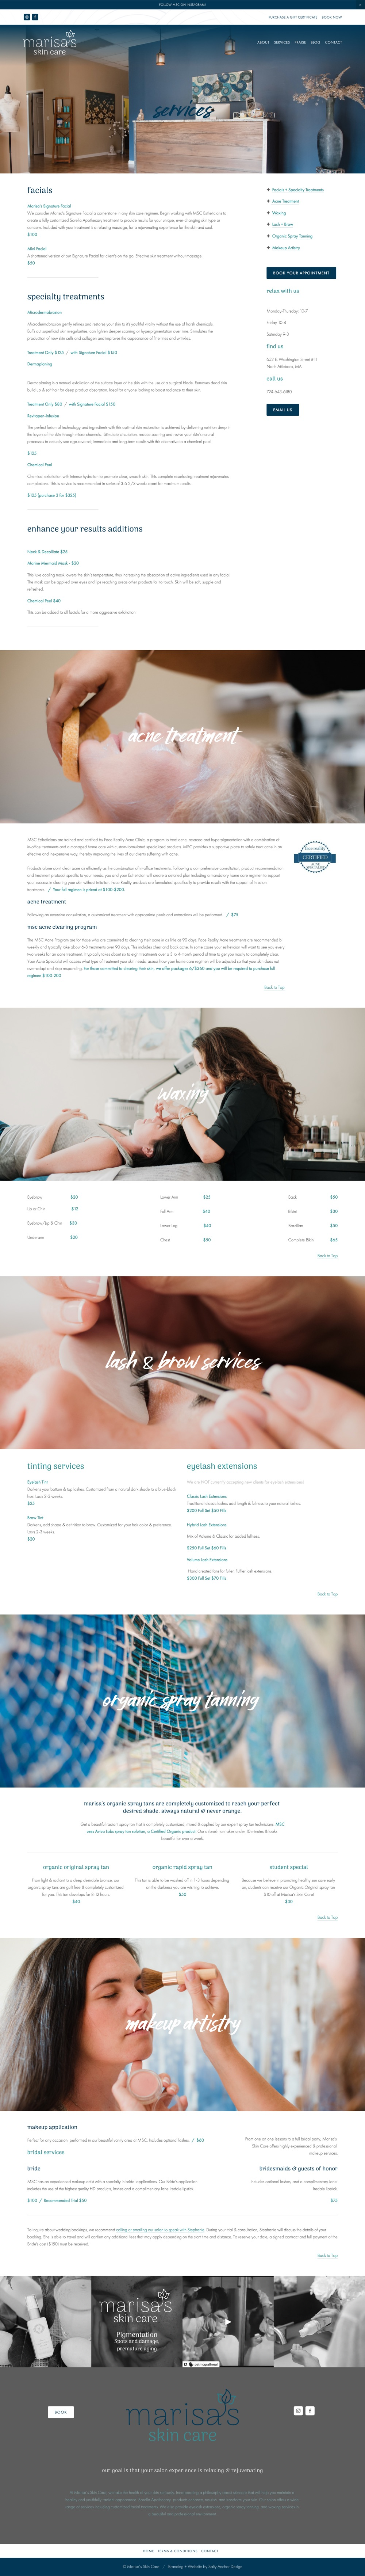 Squarespace Website Custom Design Services Menu